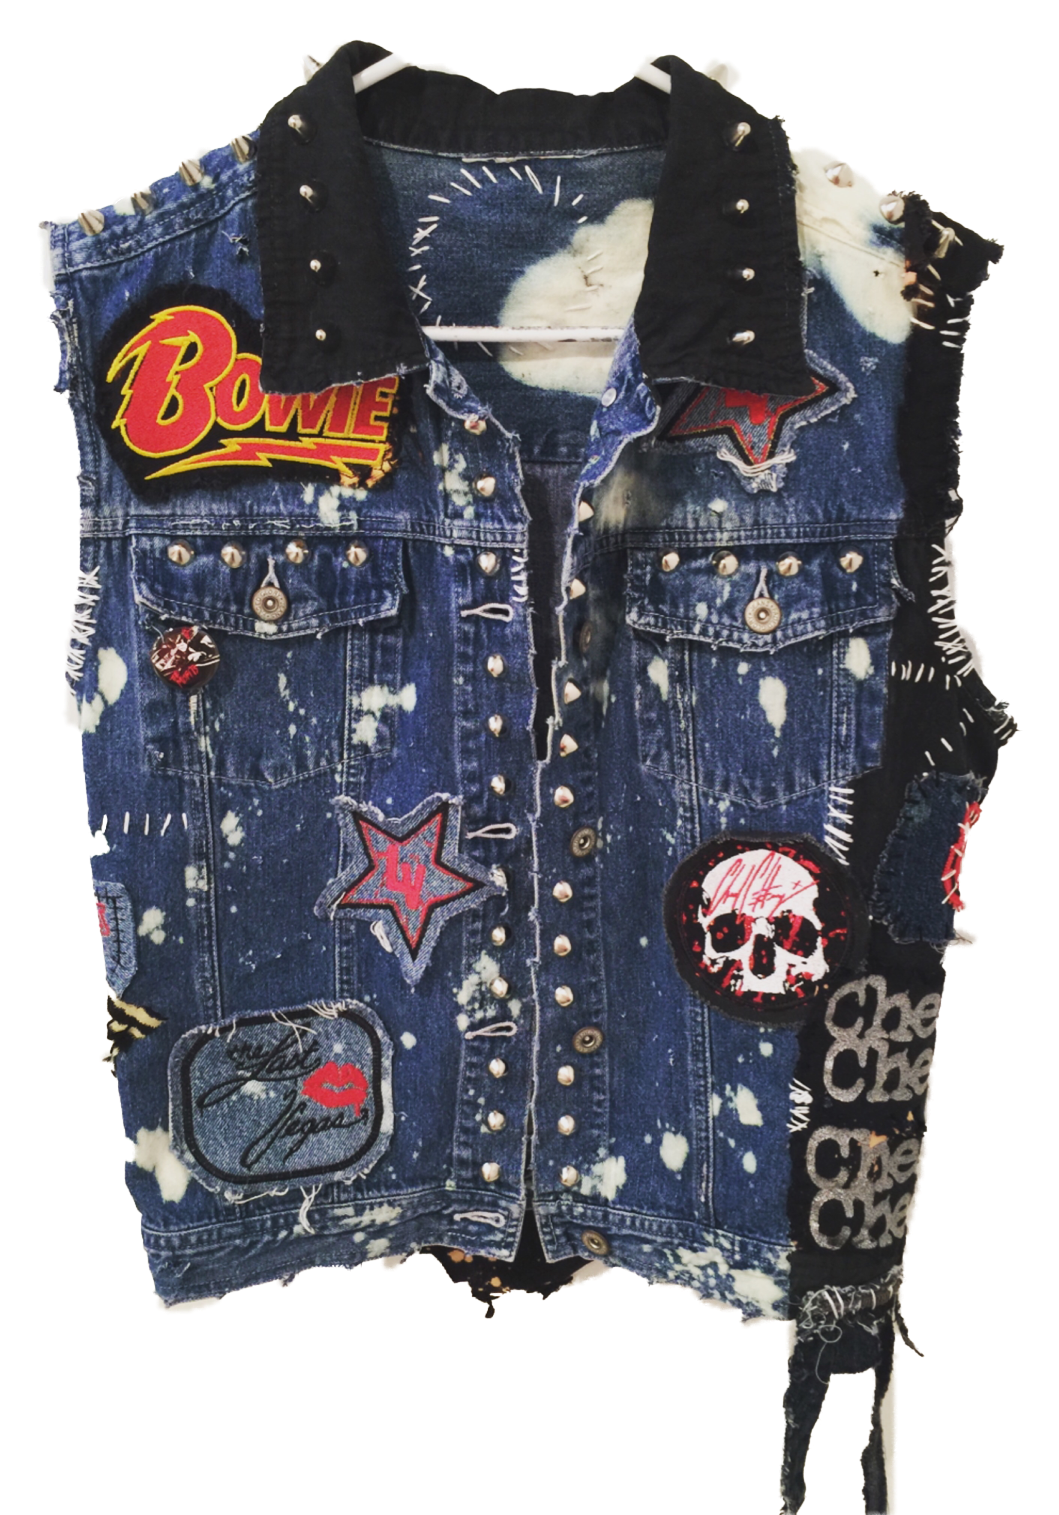 Denim rocker vest by Chad Cherry. Studded vests from Chad